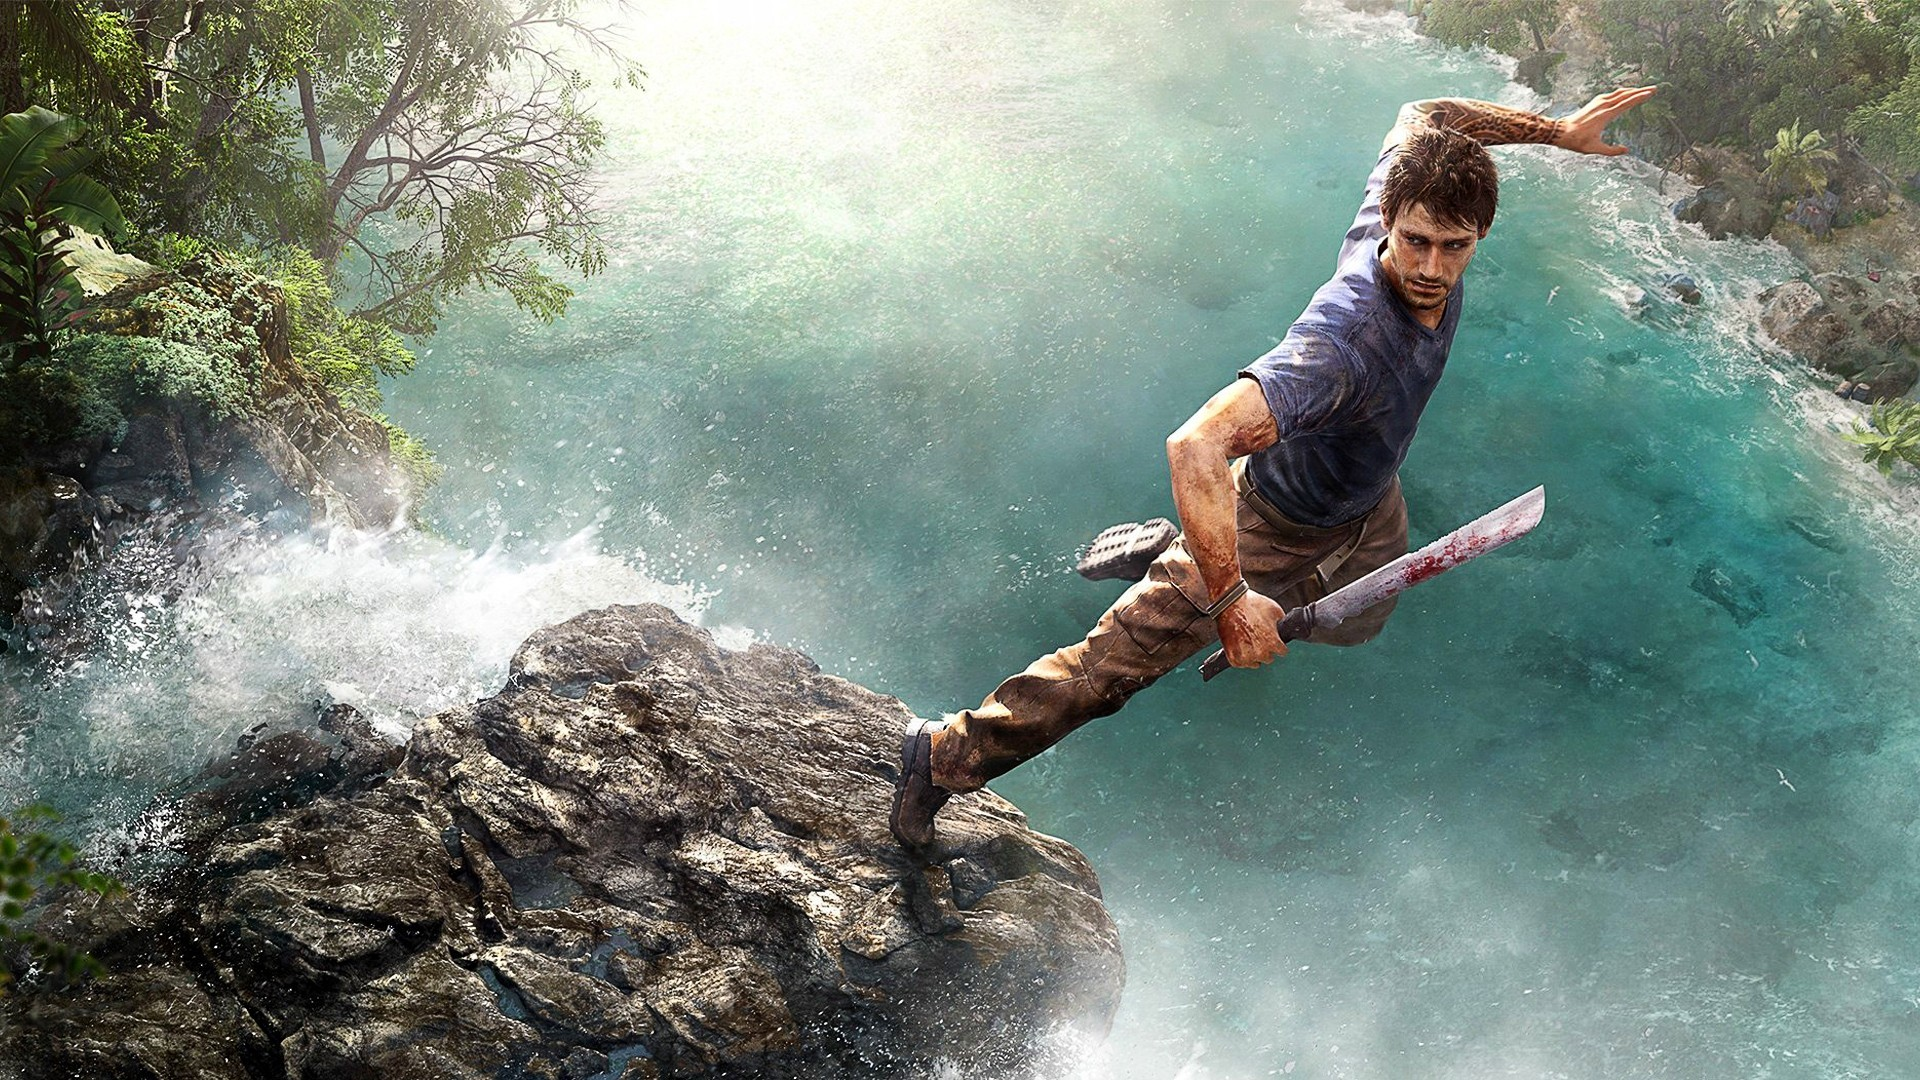 1920x1080 Far Cry 3 images far cry 3 jason 2 HD wallpaper and background photos